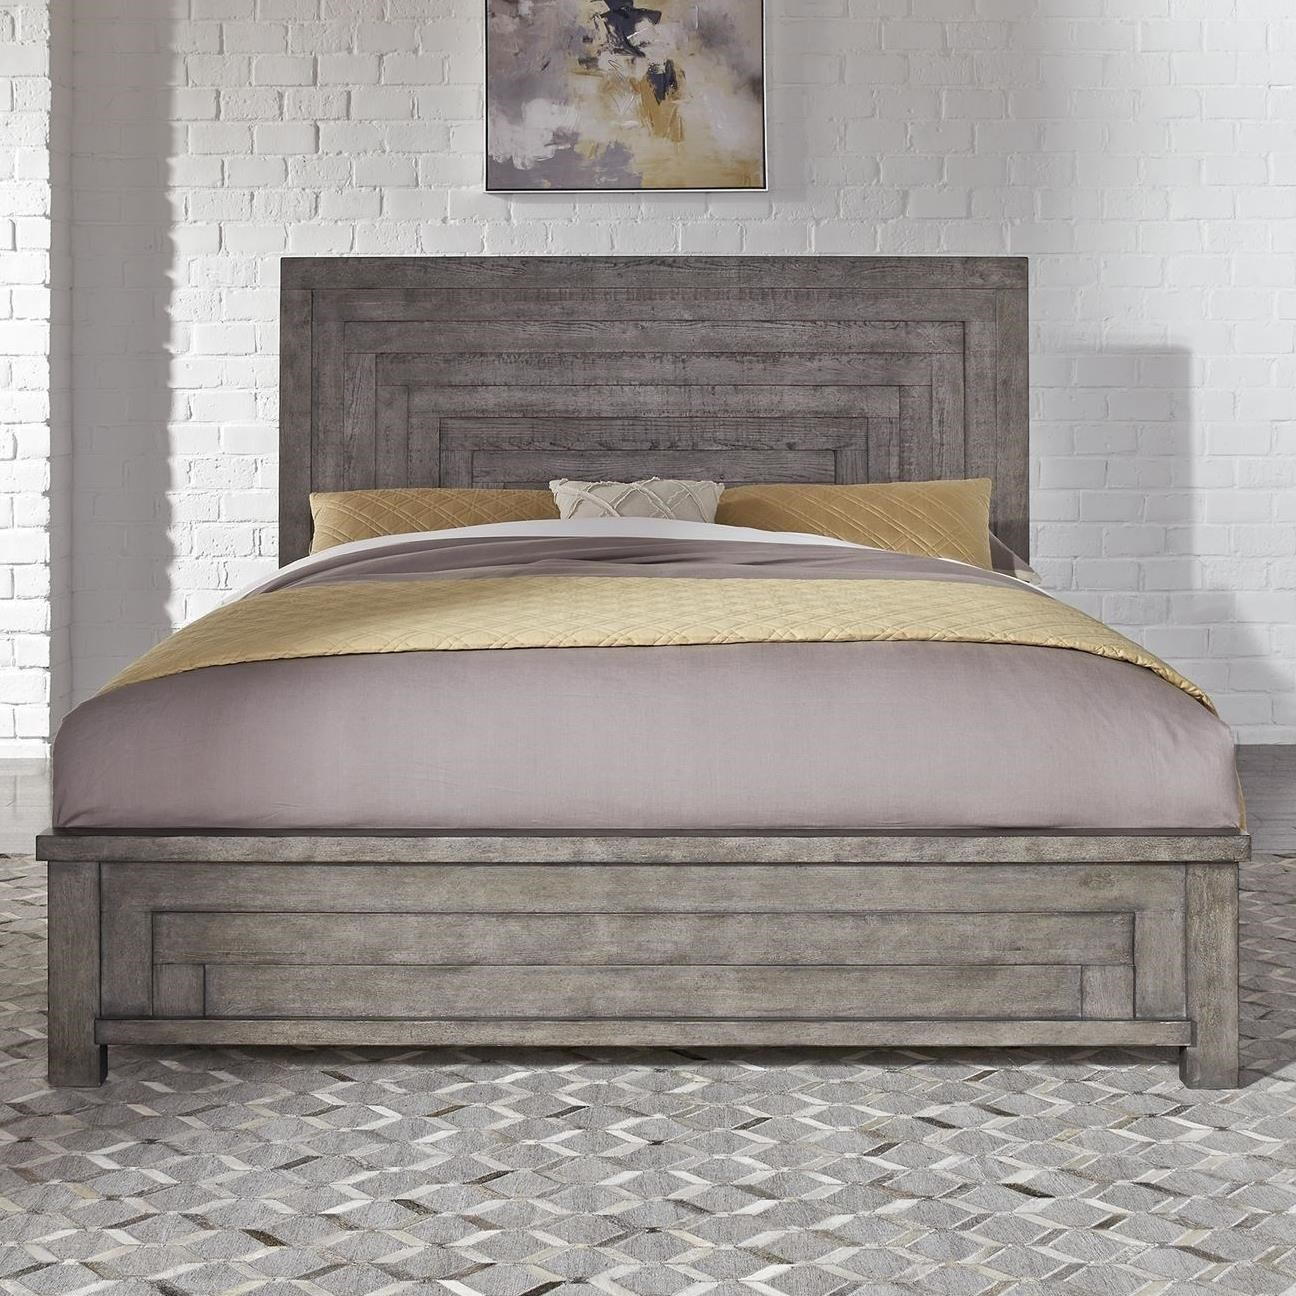 Liberty Furniture Modern Farmhouse Contemporary Queen Low Profile Bed Royal Furniture Platform Beds Low Profile Beds